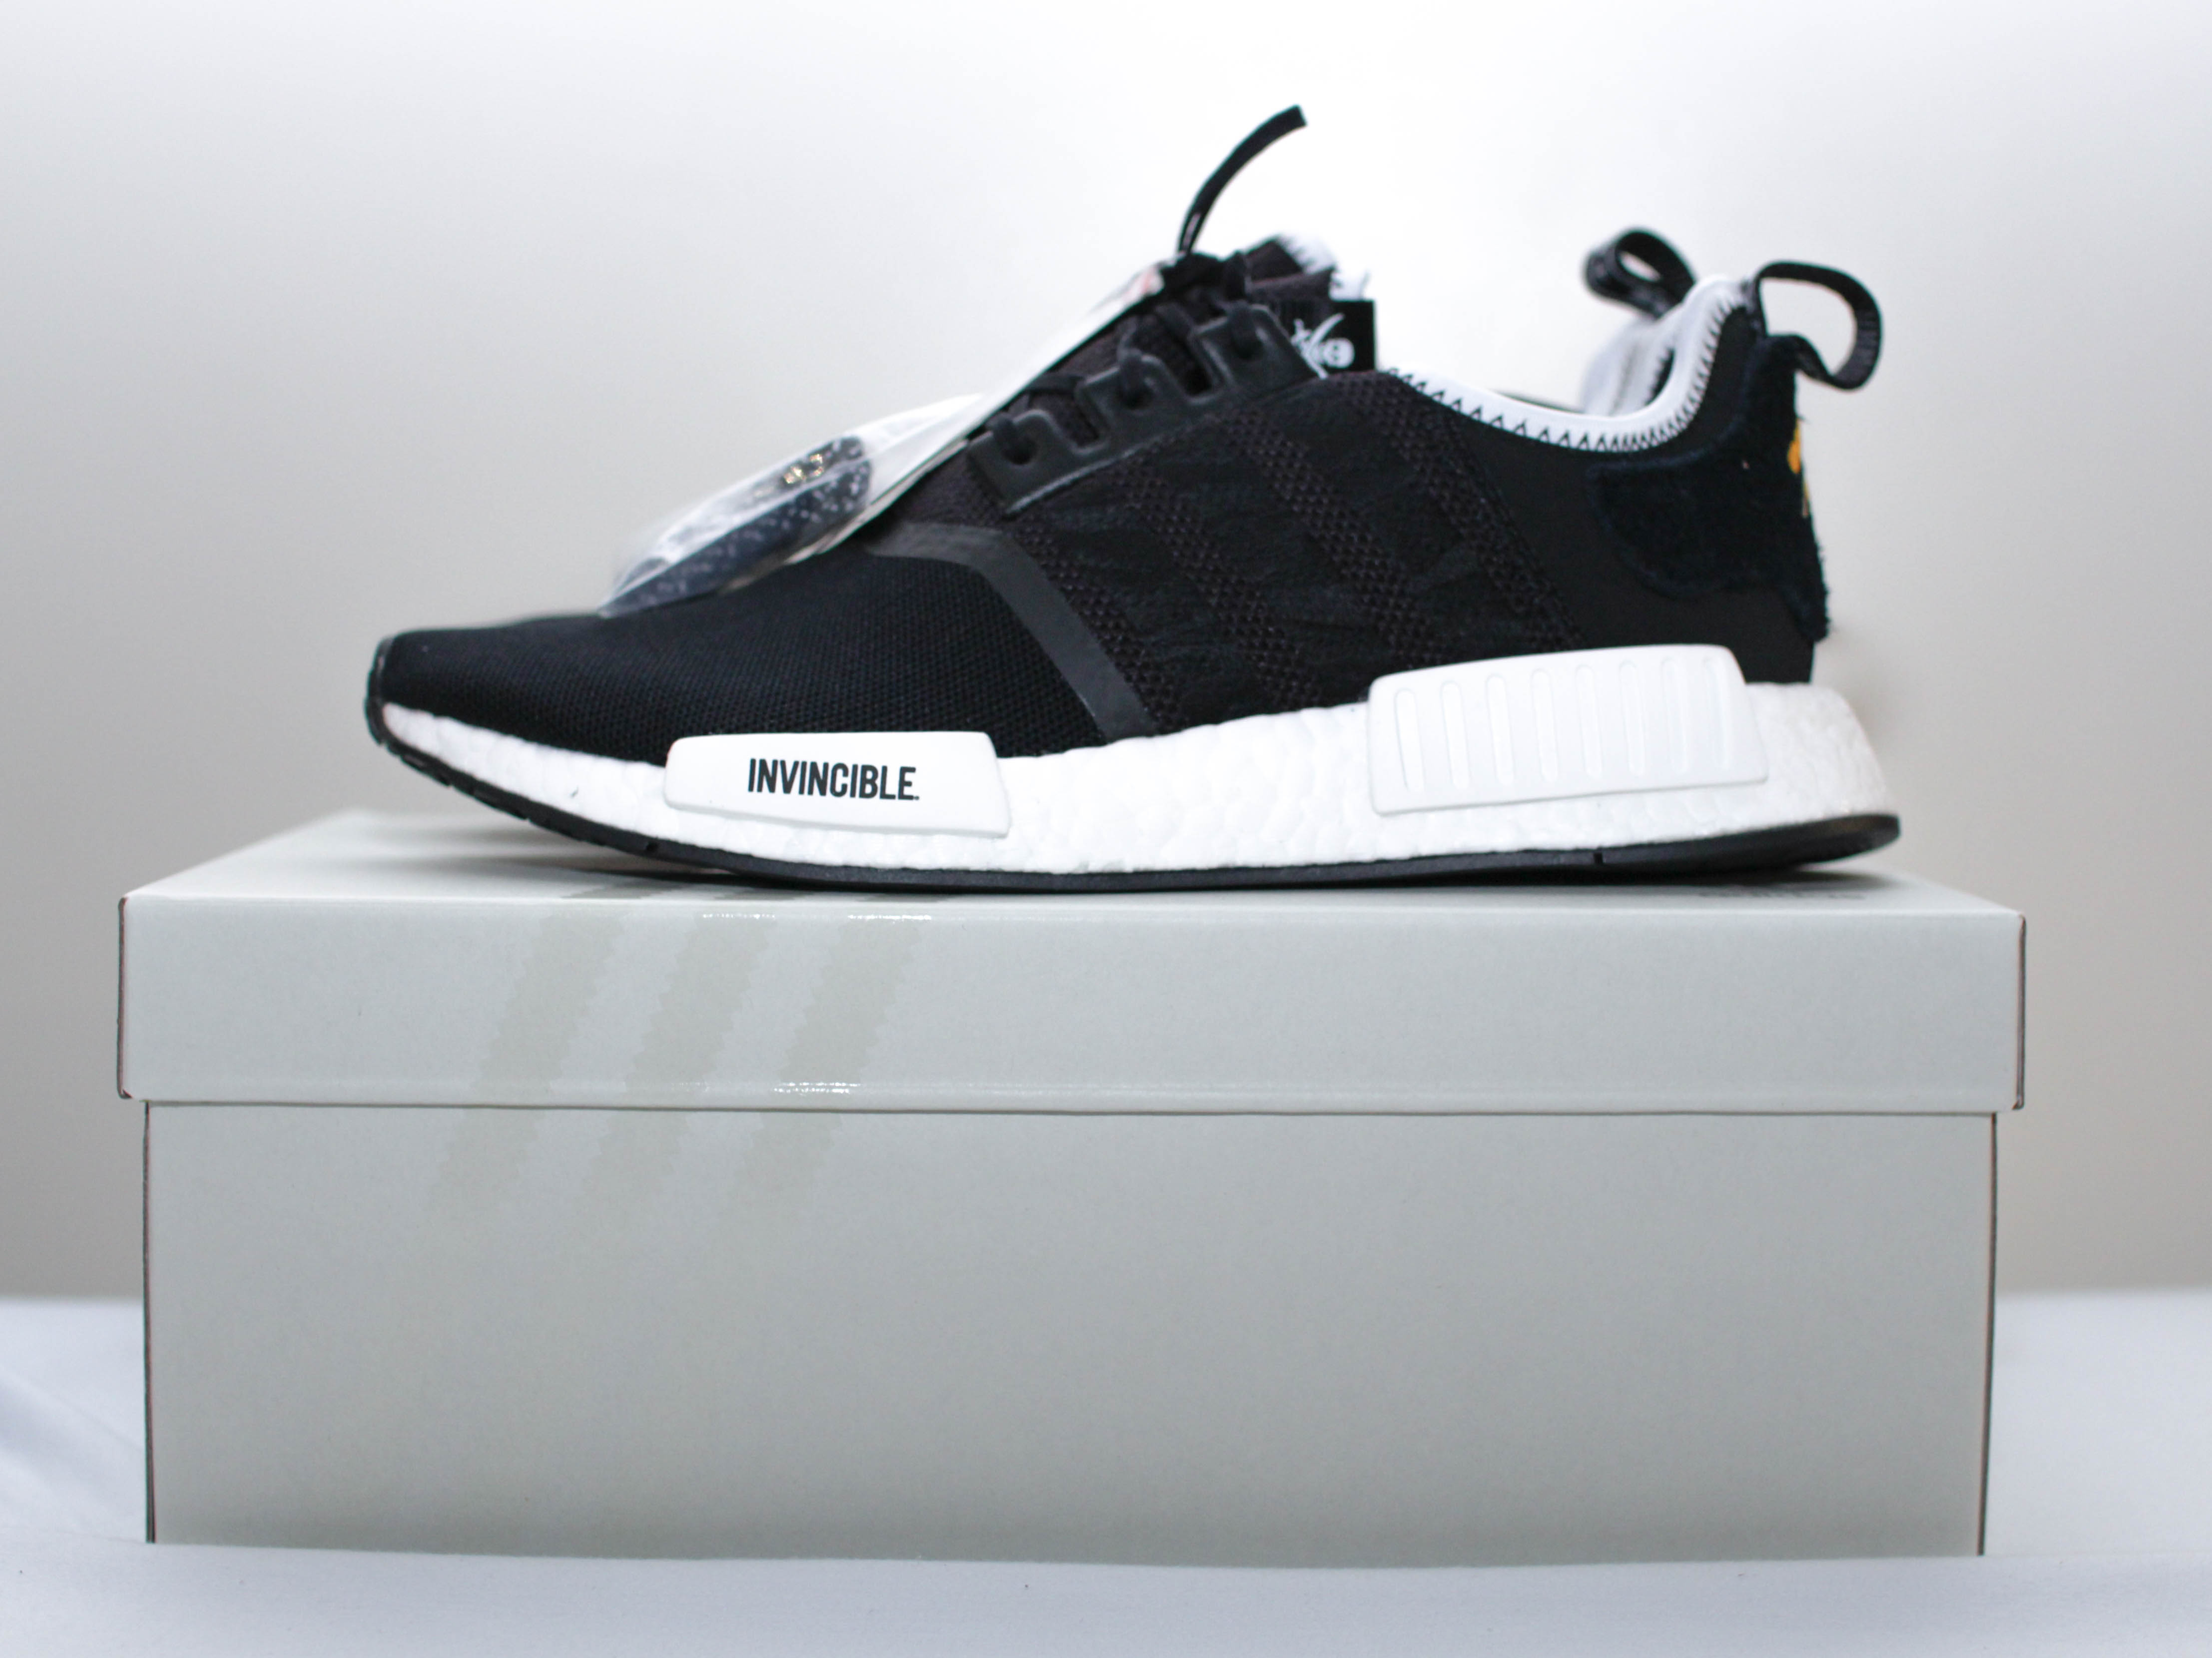 competitive price 78d83 b853d Invincible x Neighborhood x Adidas NMD R1